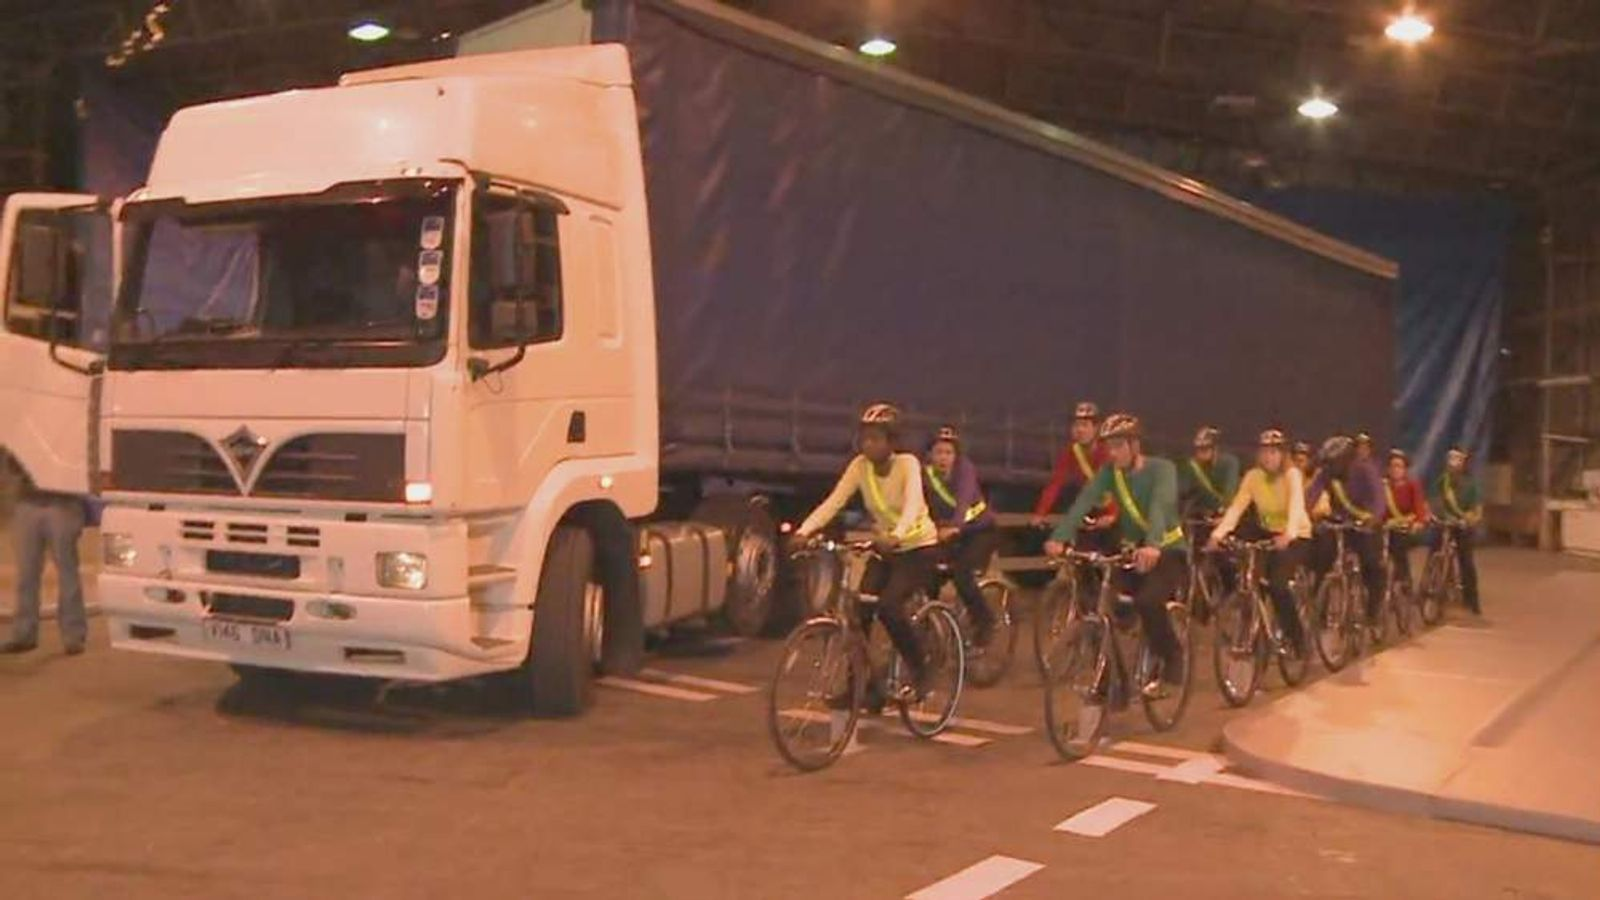 cyclists in Lorry blindspot